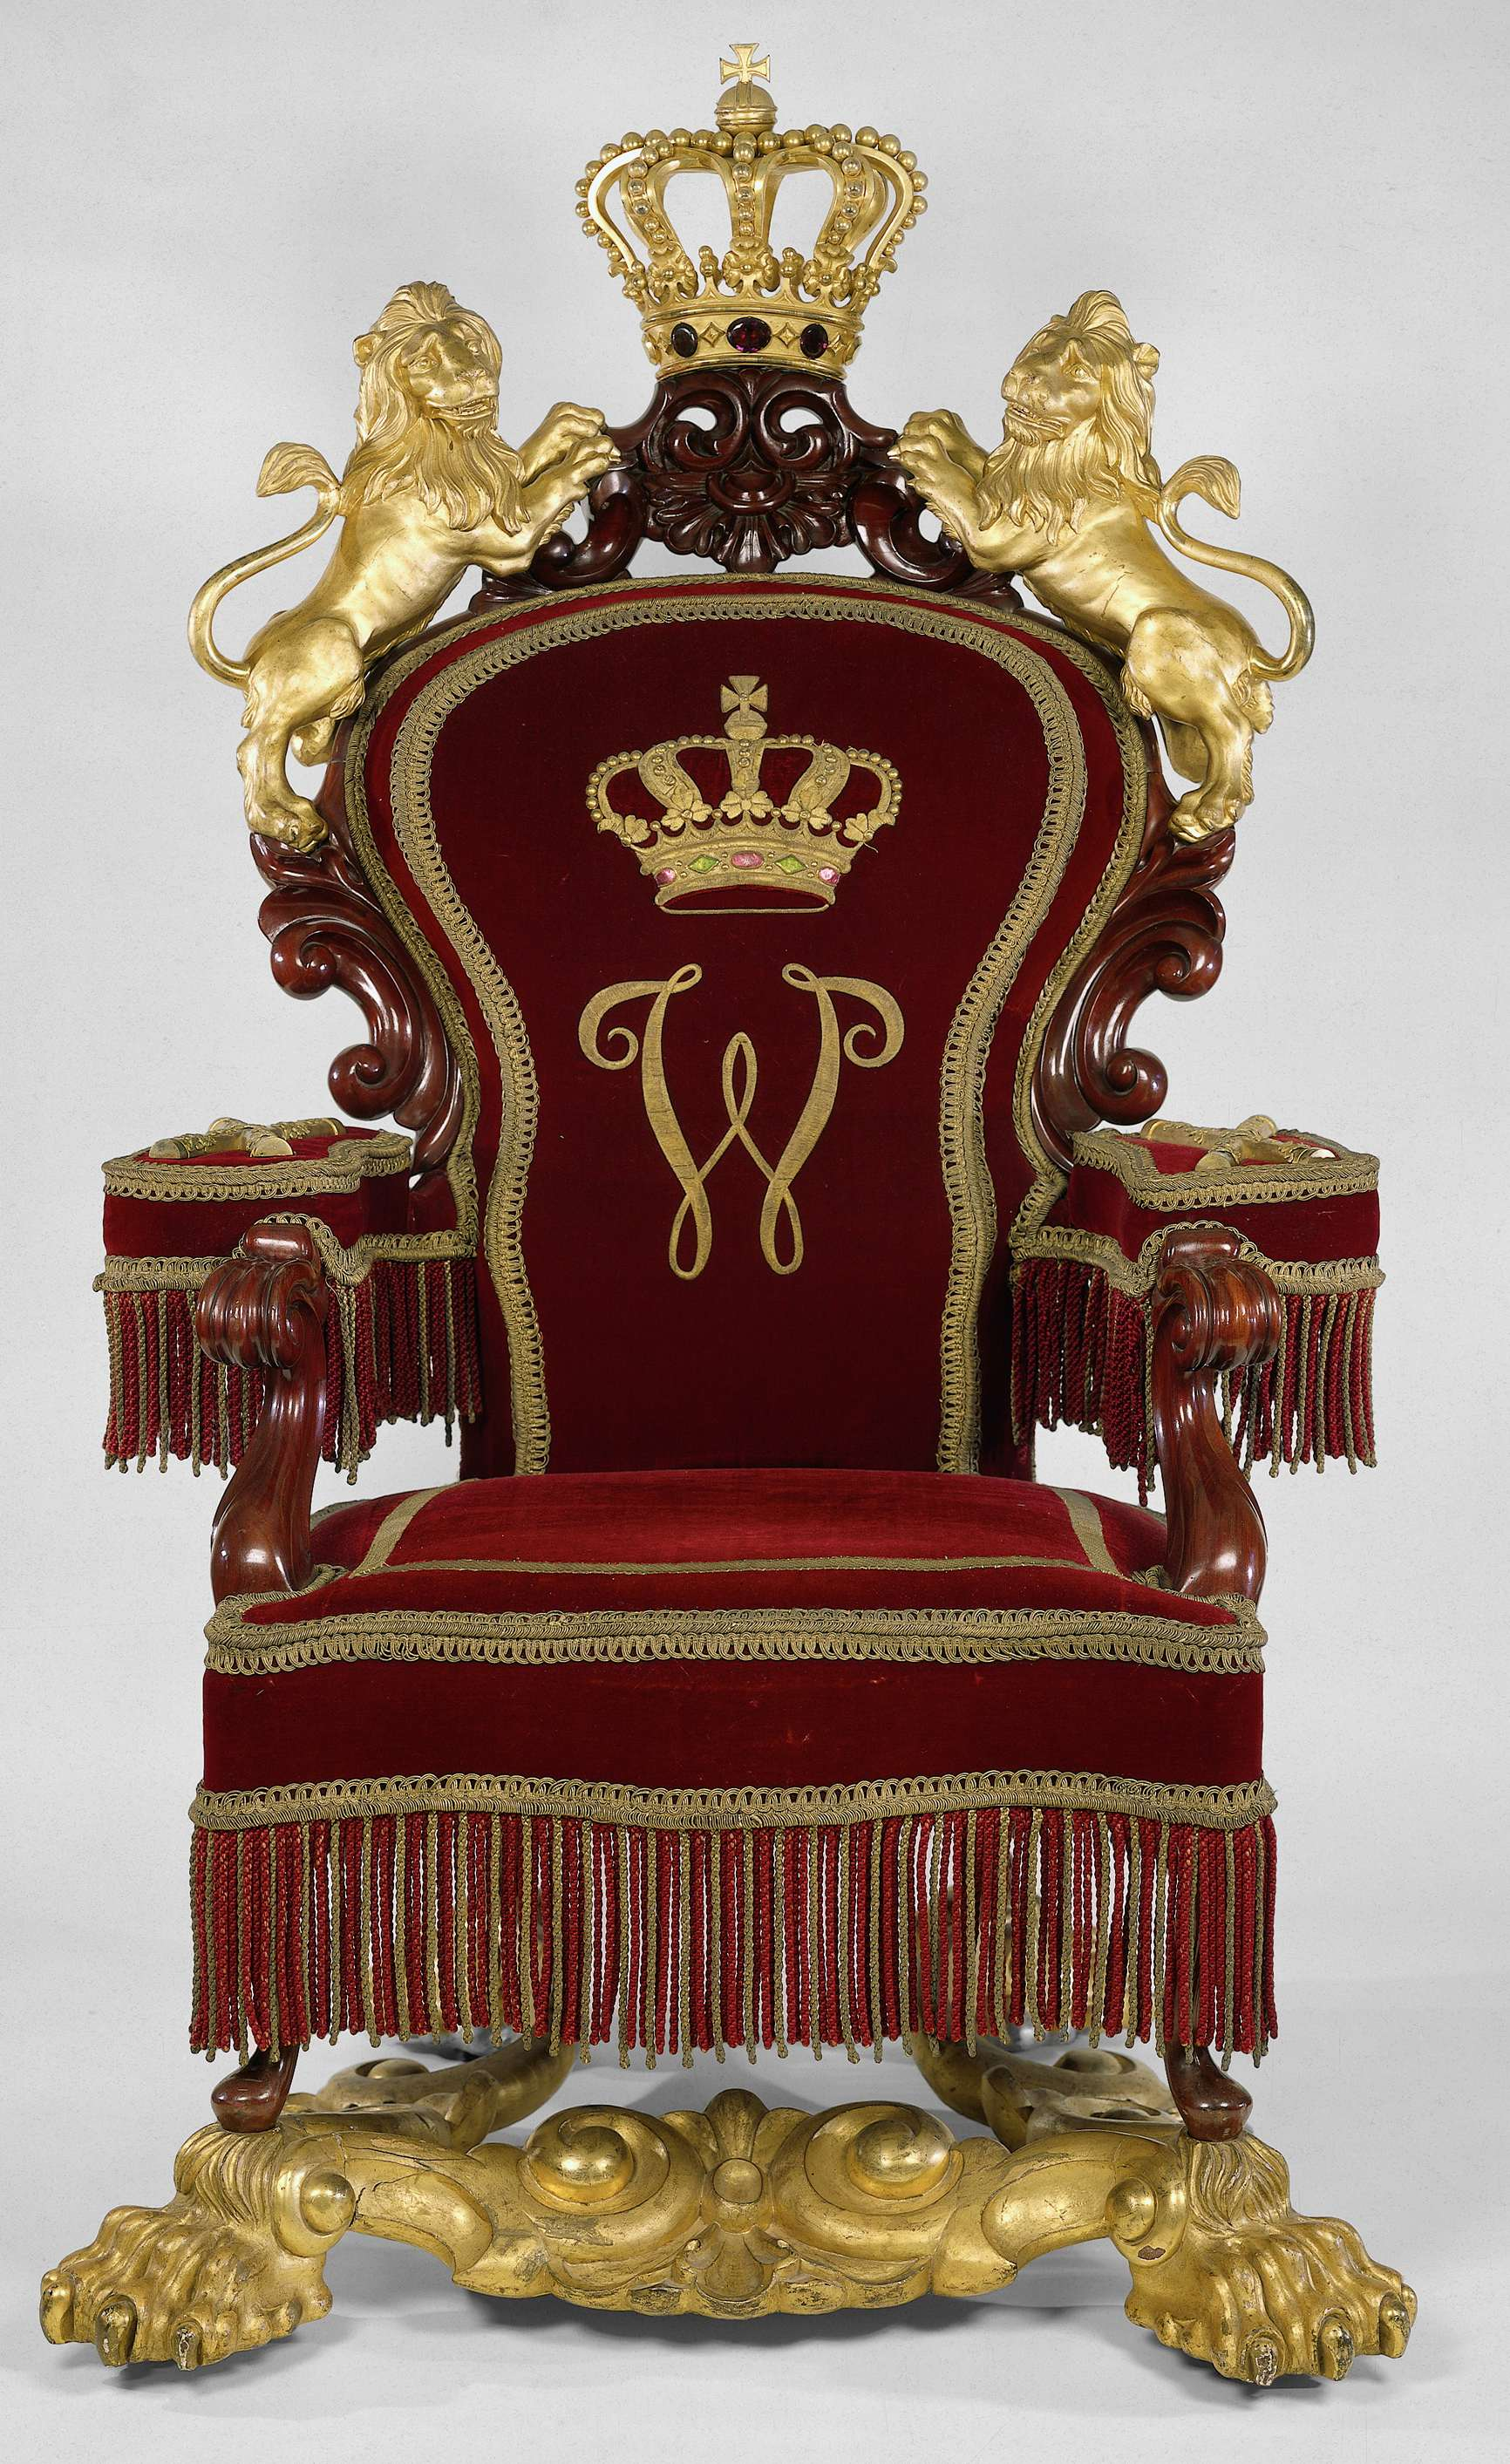 File:Throne Of Kings William II, William III And Of Queen Wilhelmina Of The